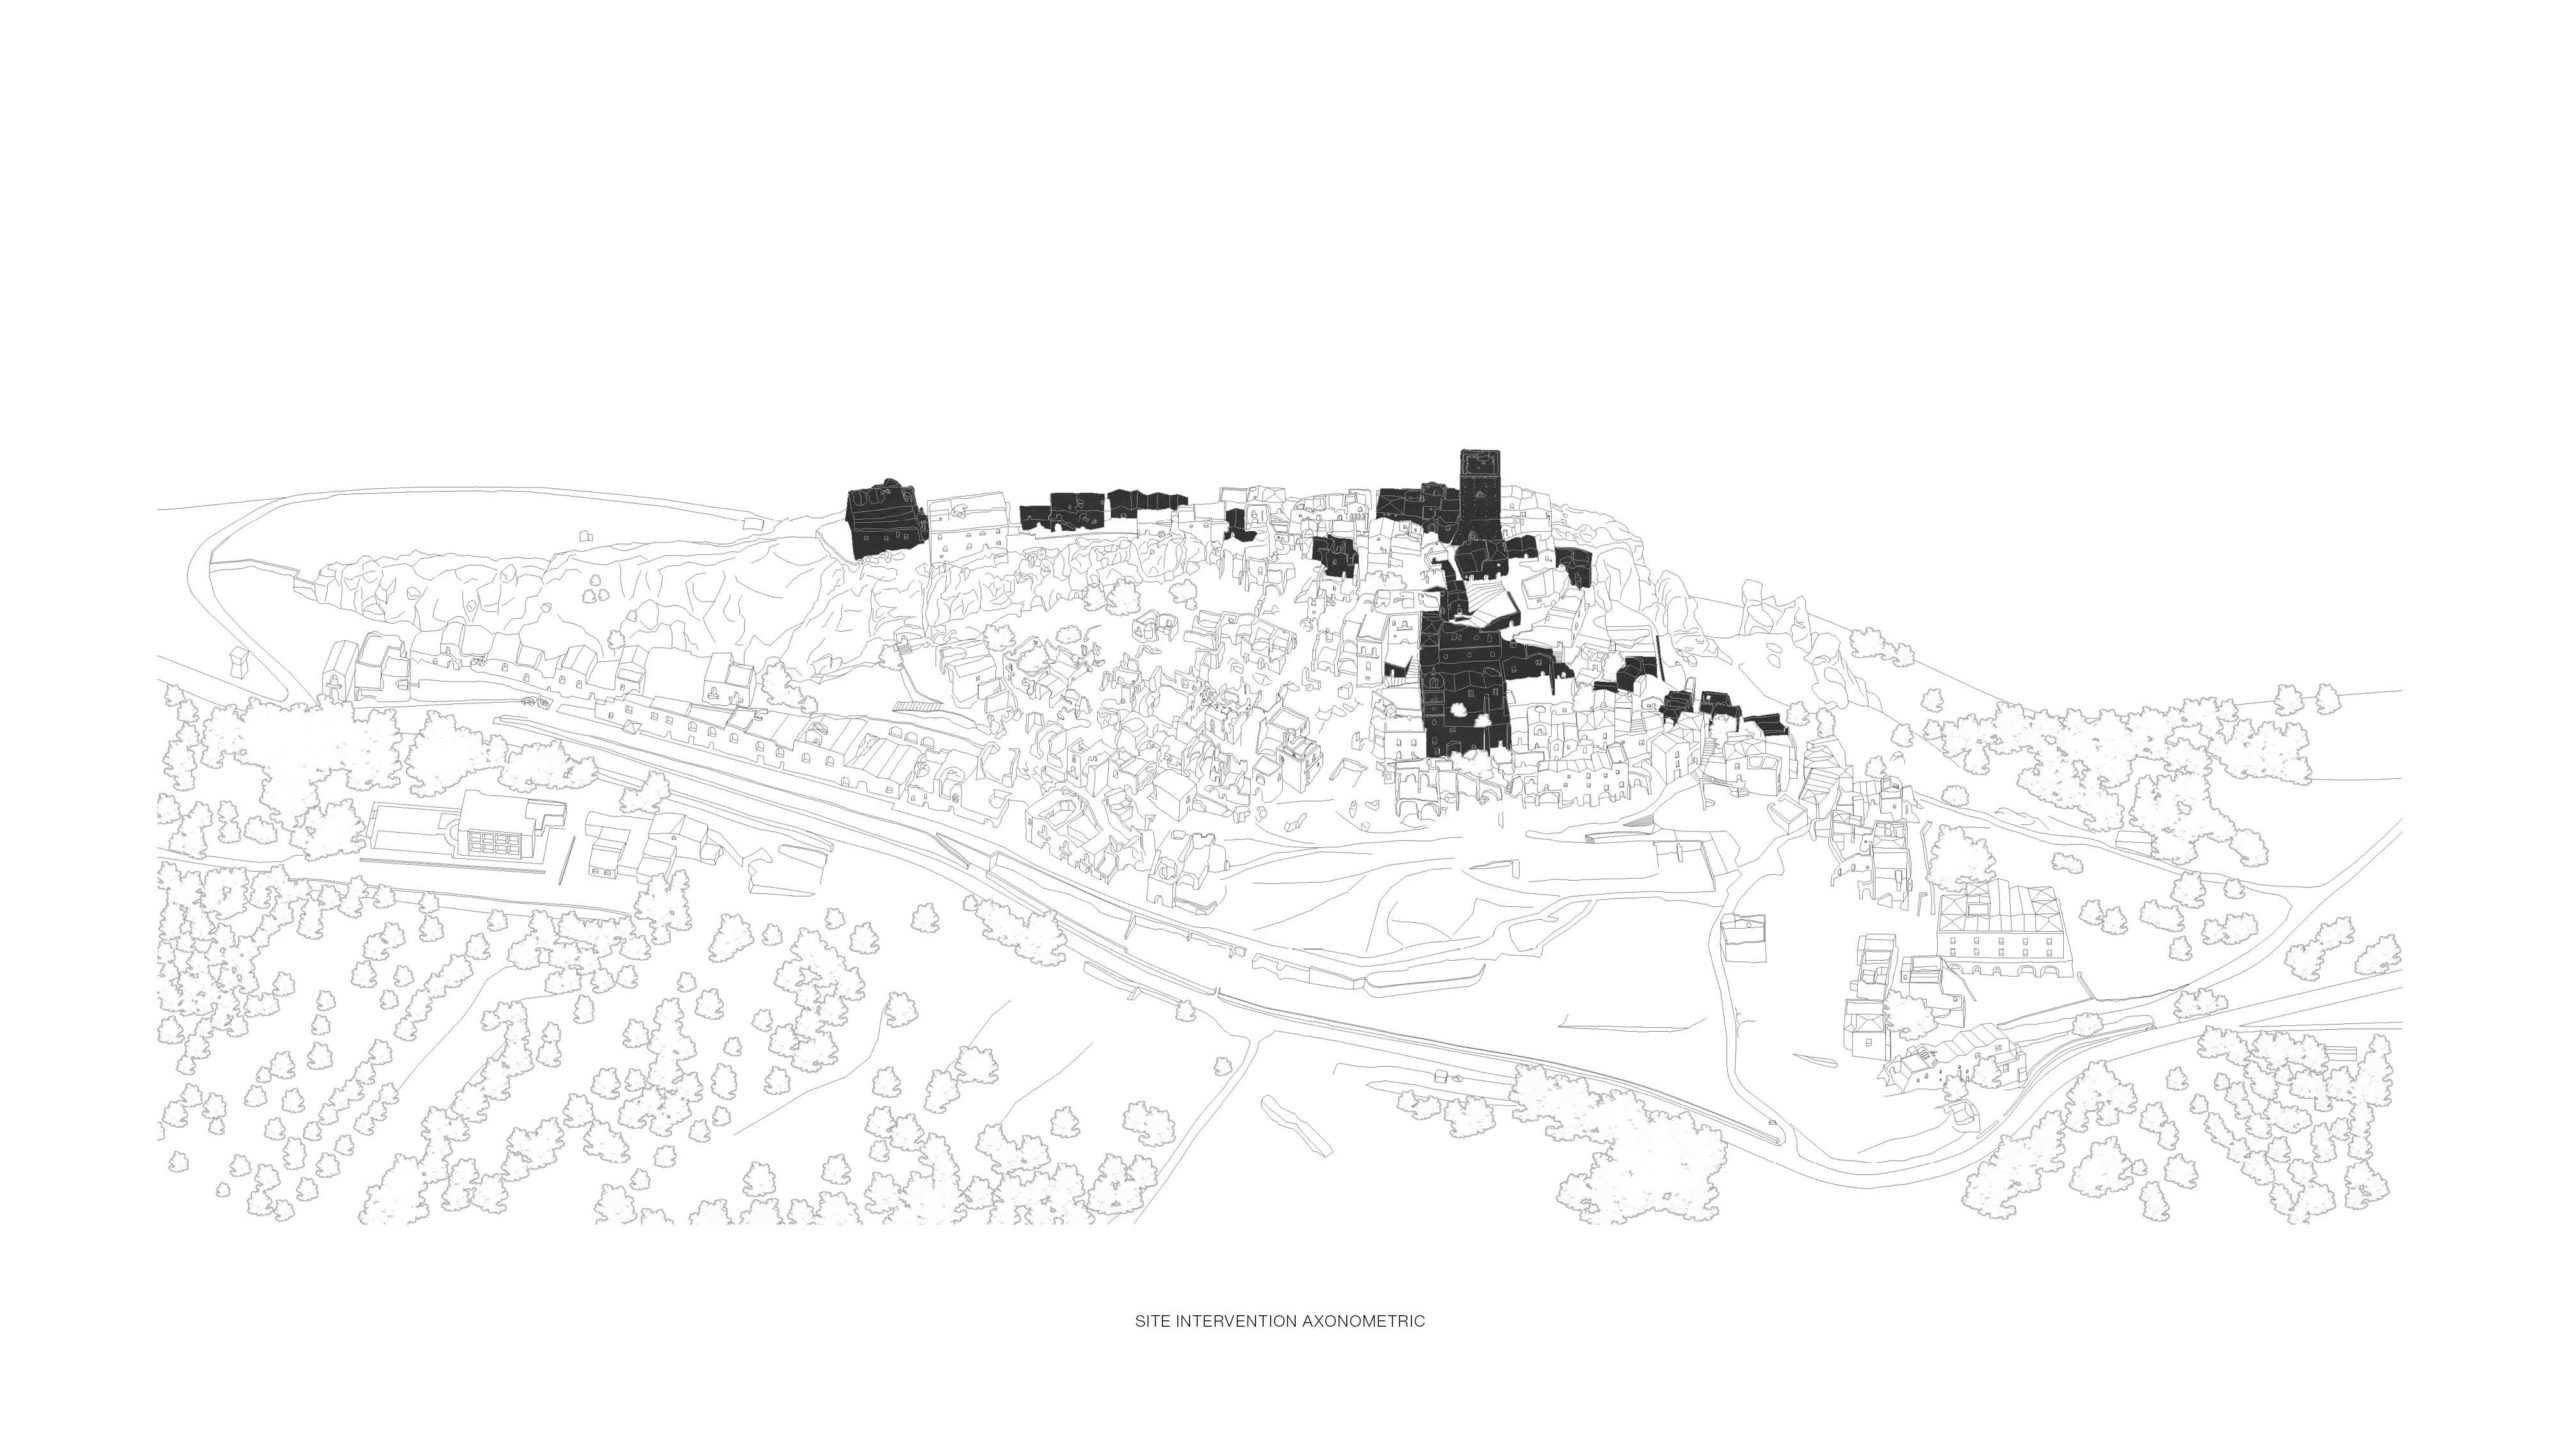 Unbuilt : TRACES - GHOST TOWN REFUGE, at Craco, Italy, by Claudio C. Araya, Yahya Abdullah 3